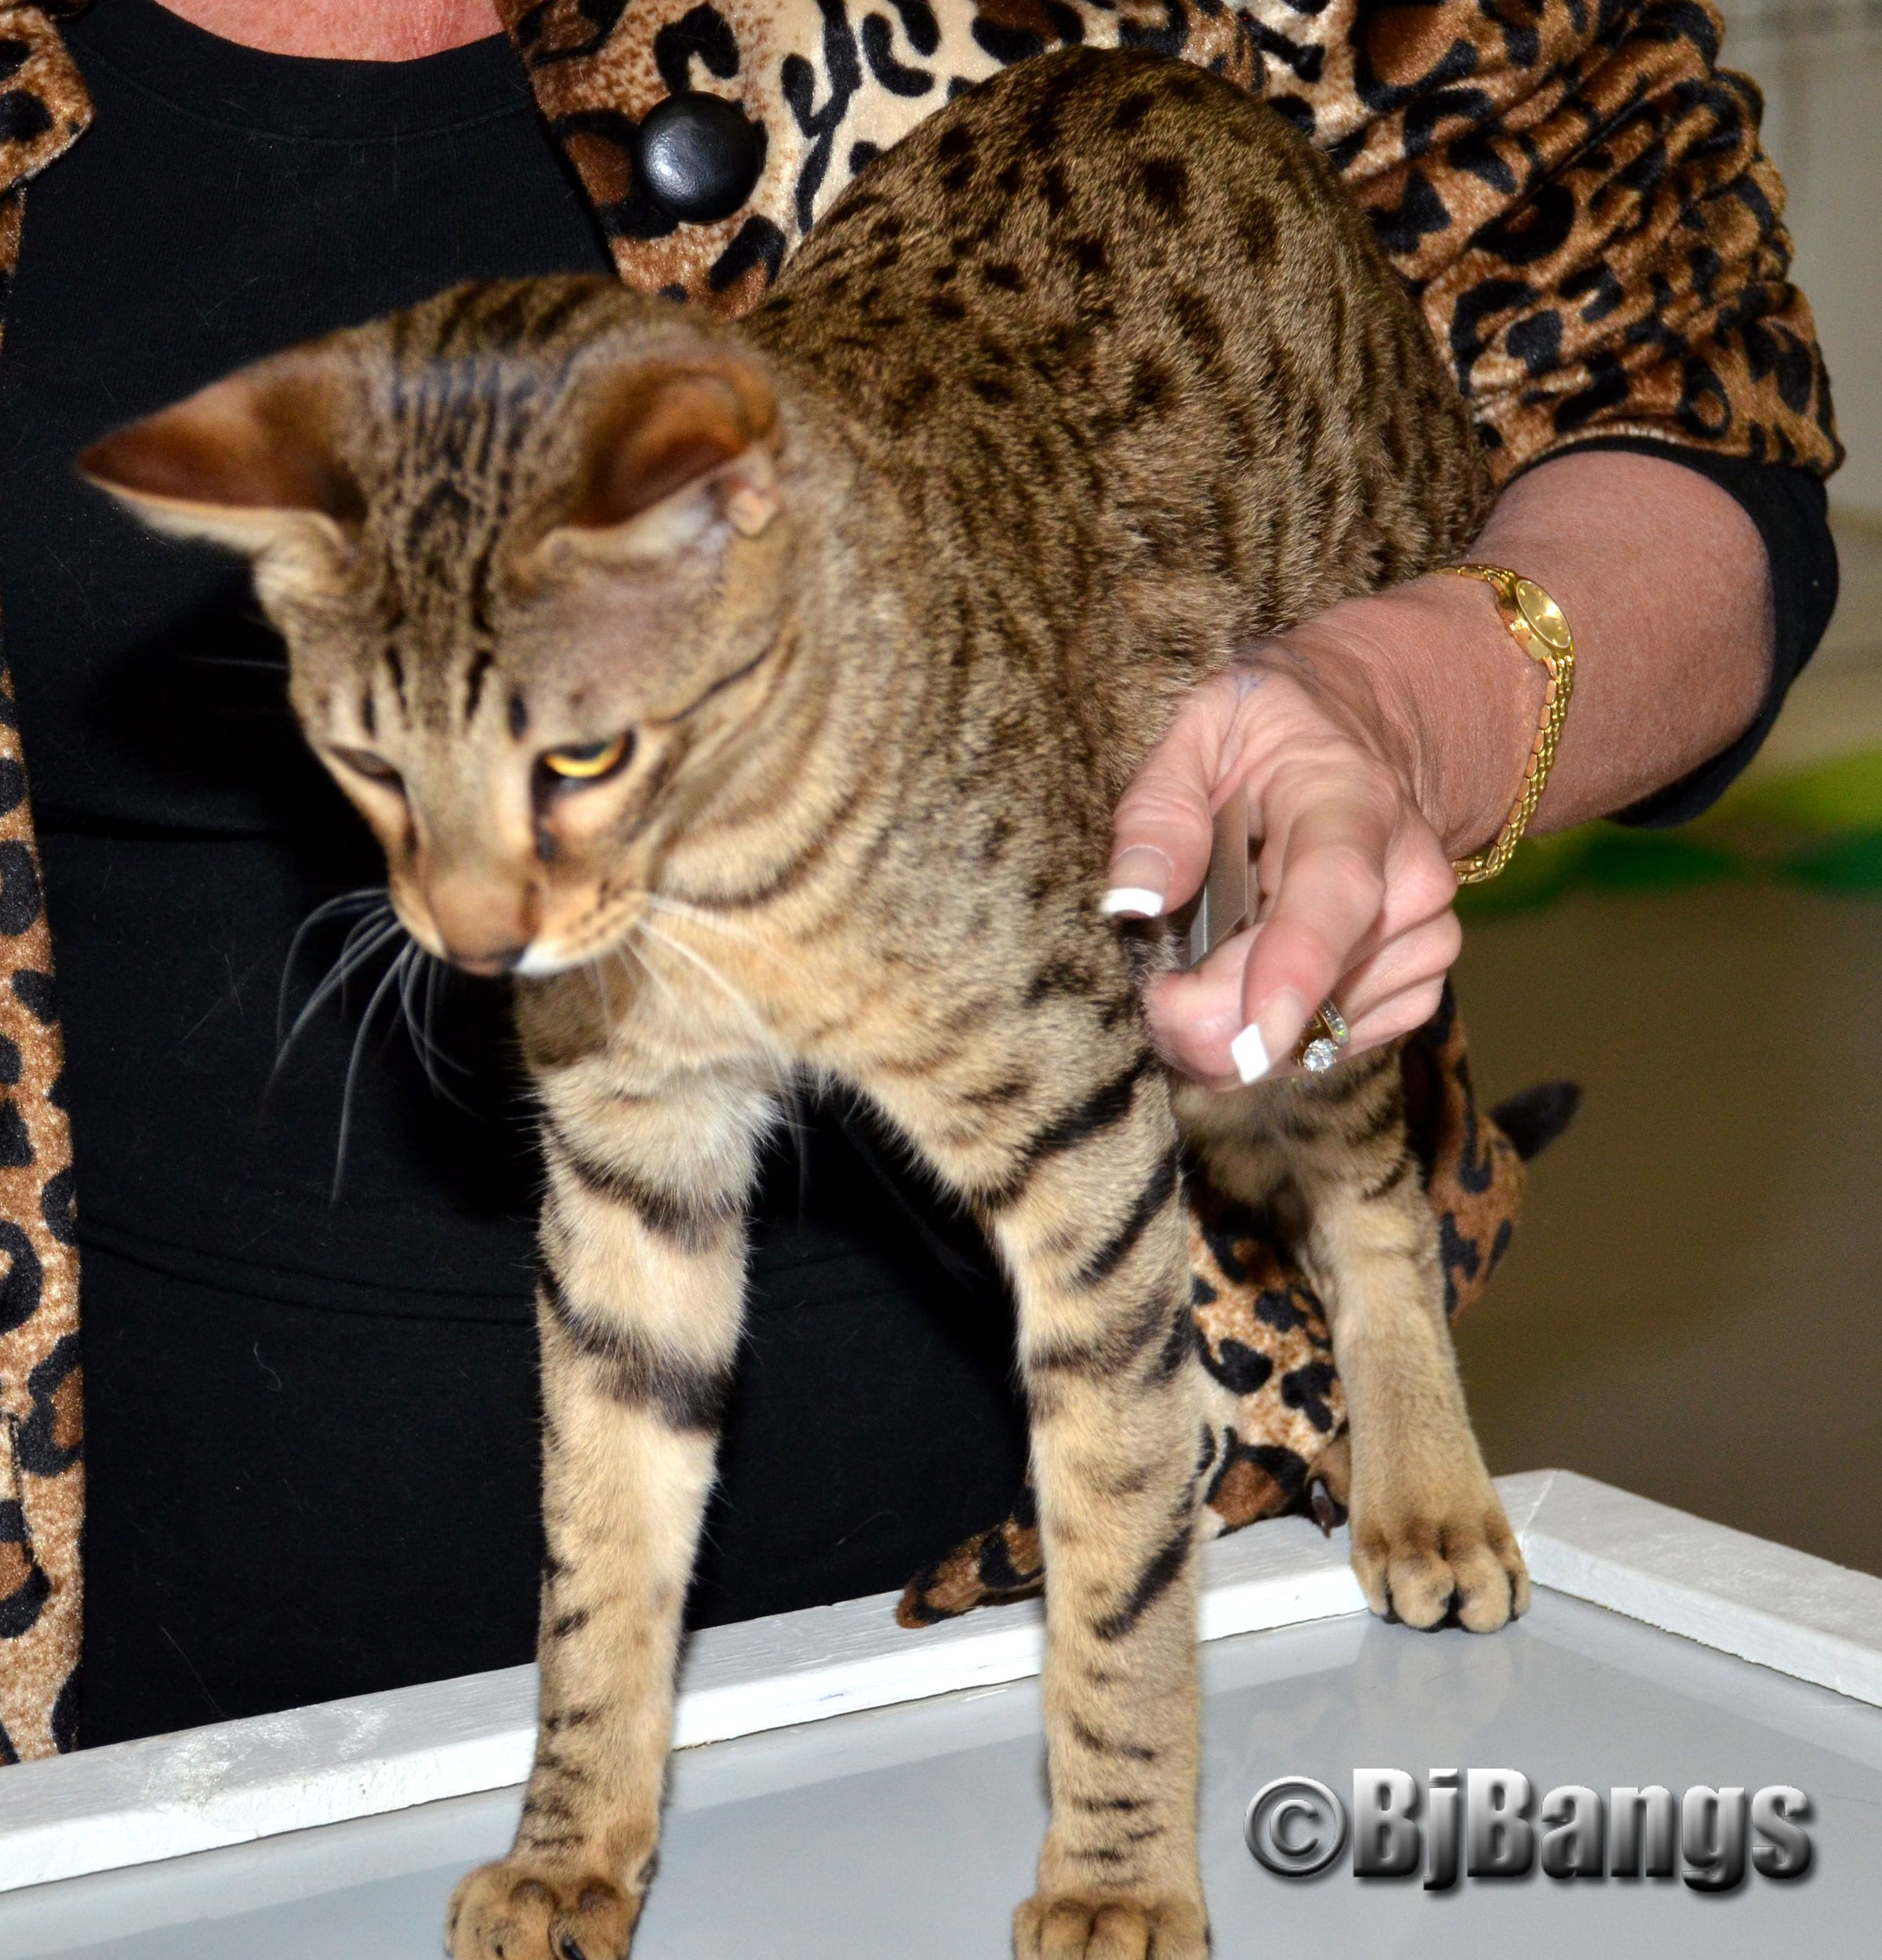 Savannah cats look exotic but they're not wild cats - Paws